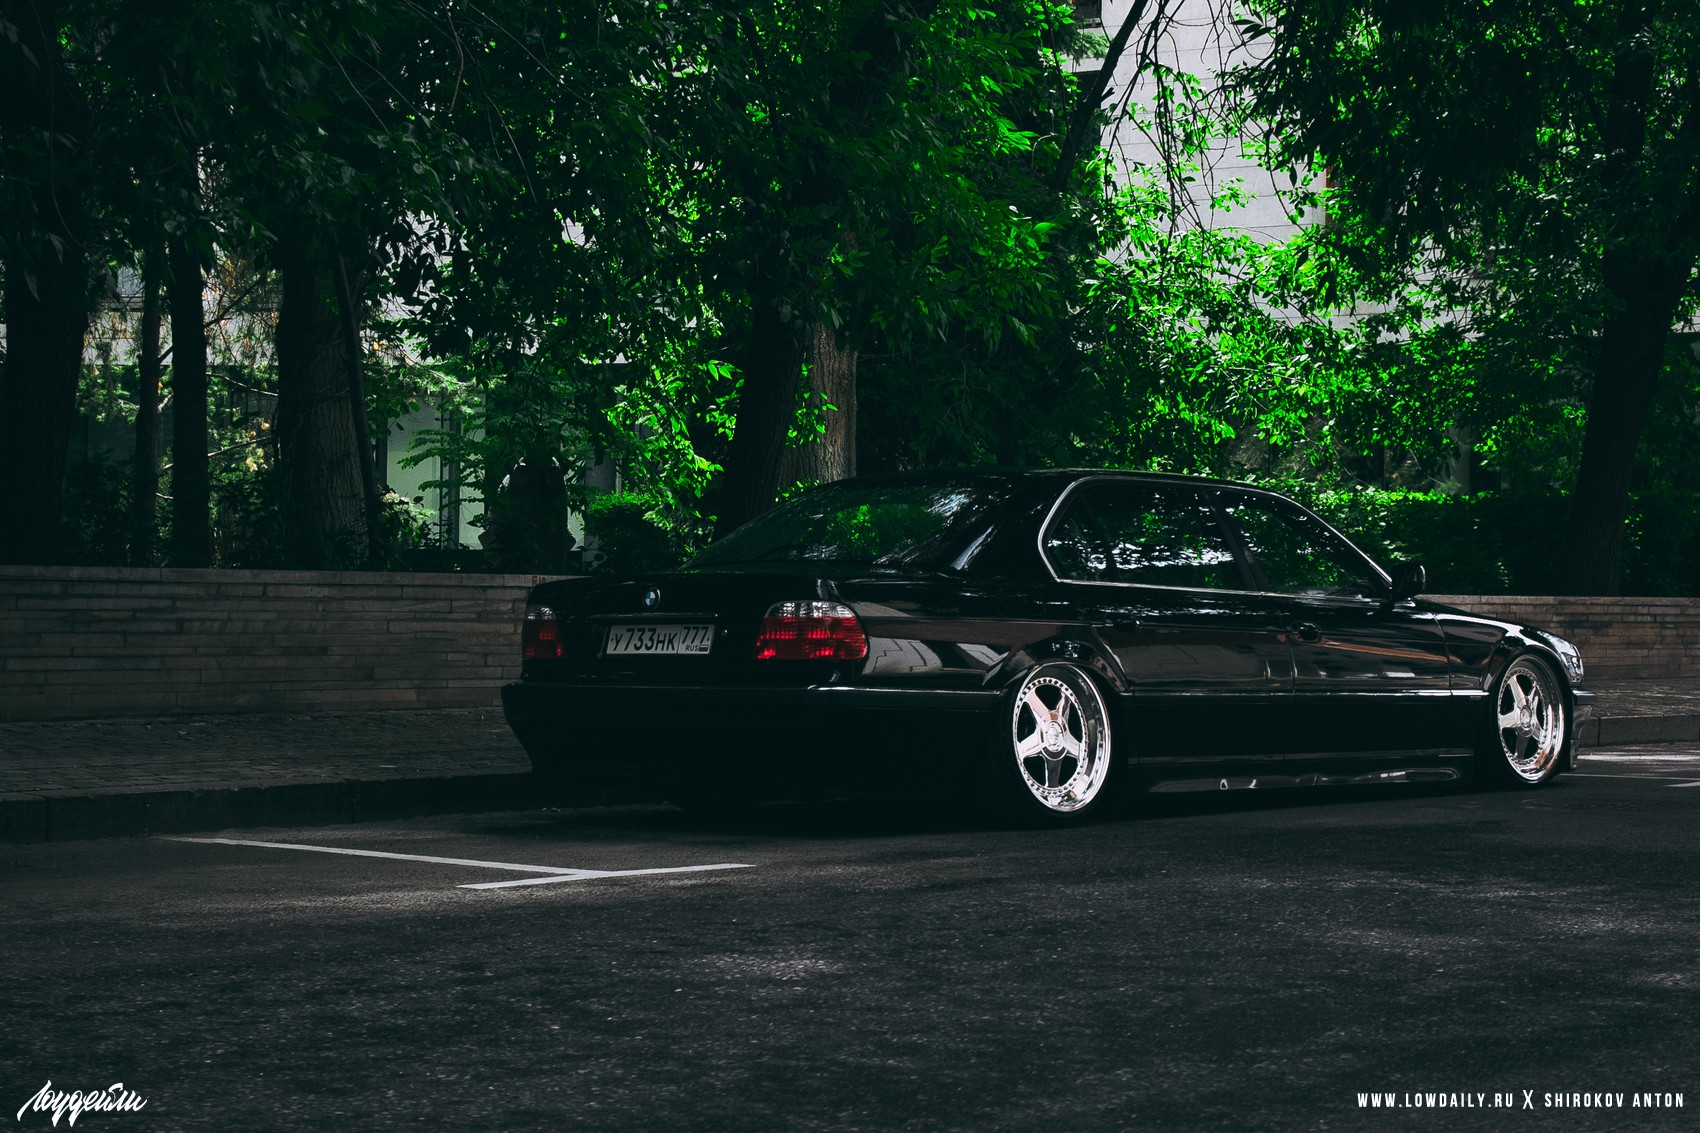 BMW E38 Lowdaily _MG_7098